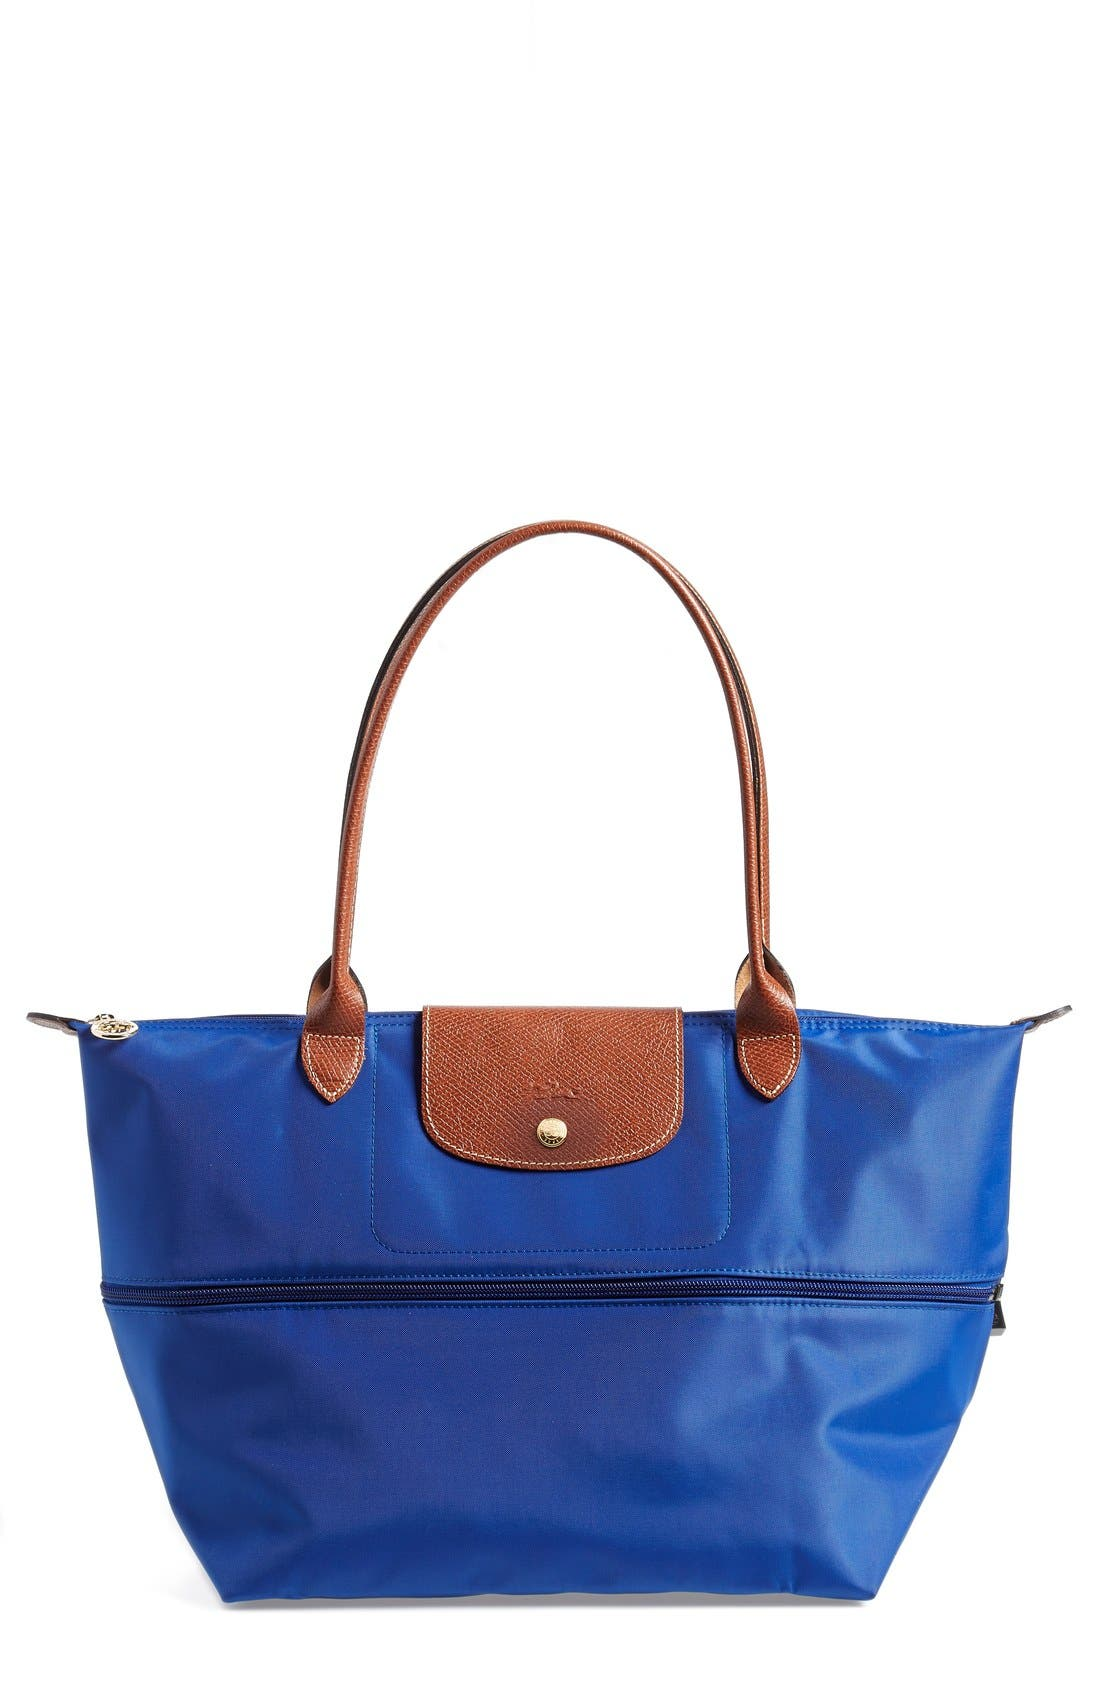 Alternate Image 1 Selected - Longchamp 'Le Pliage' Expandable Tote (Nordstrom Exclusive)